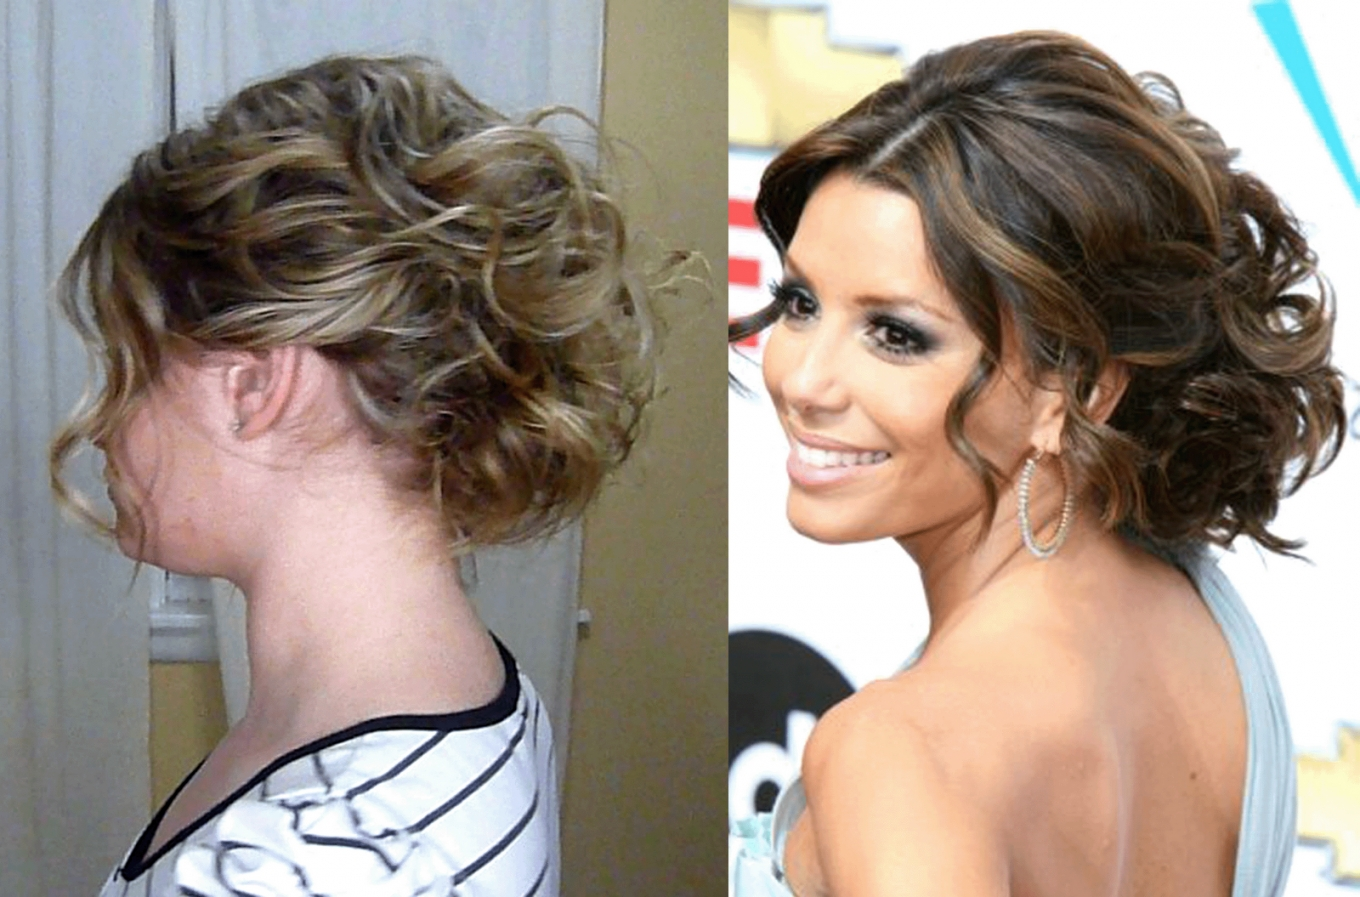 Curly Updo Hairstyles Loose Curly Updo Hairgirl Our Wedding | Latest Pertaining To Loose Curly Updo Hairstyles (View 2 of 15)